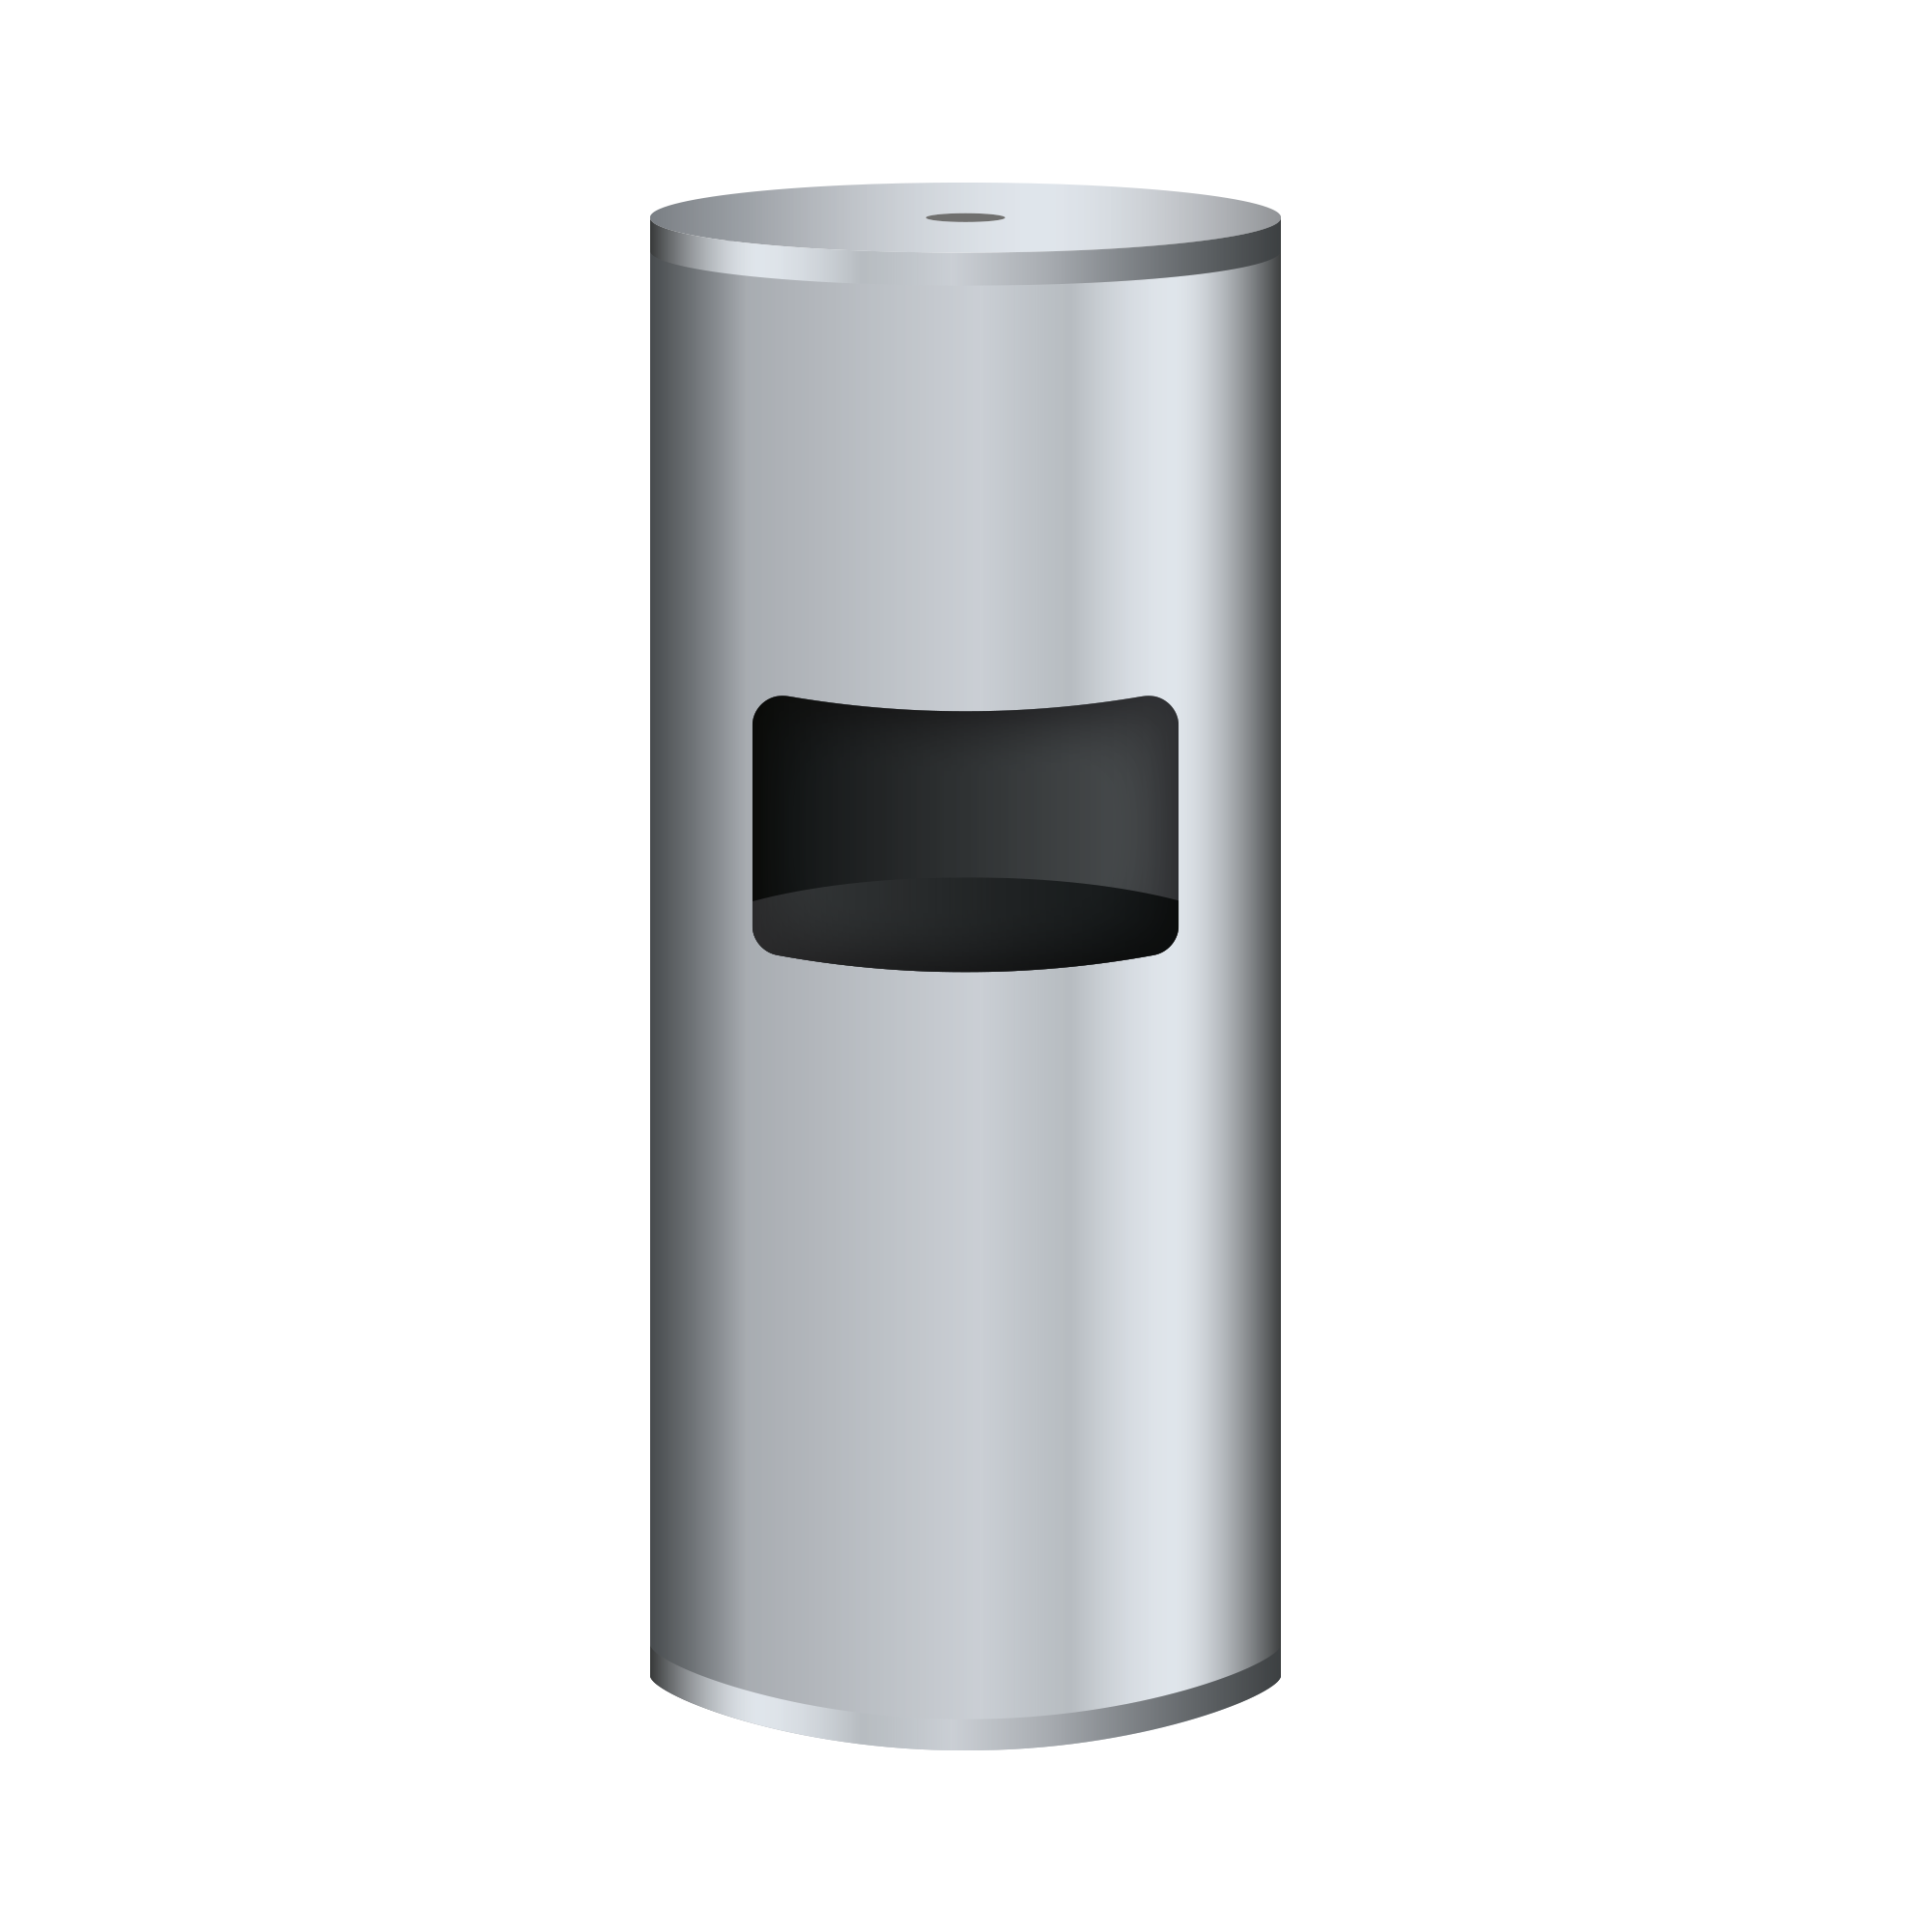 Brushed Stainless Steel Floor Standing Flat Top Dispenser